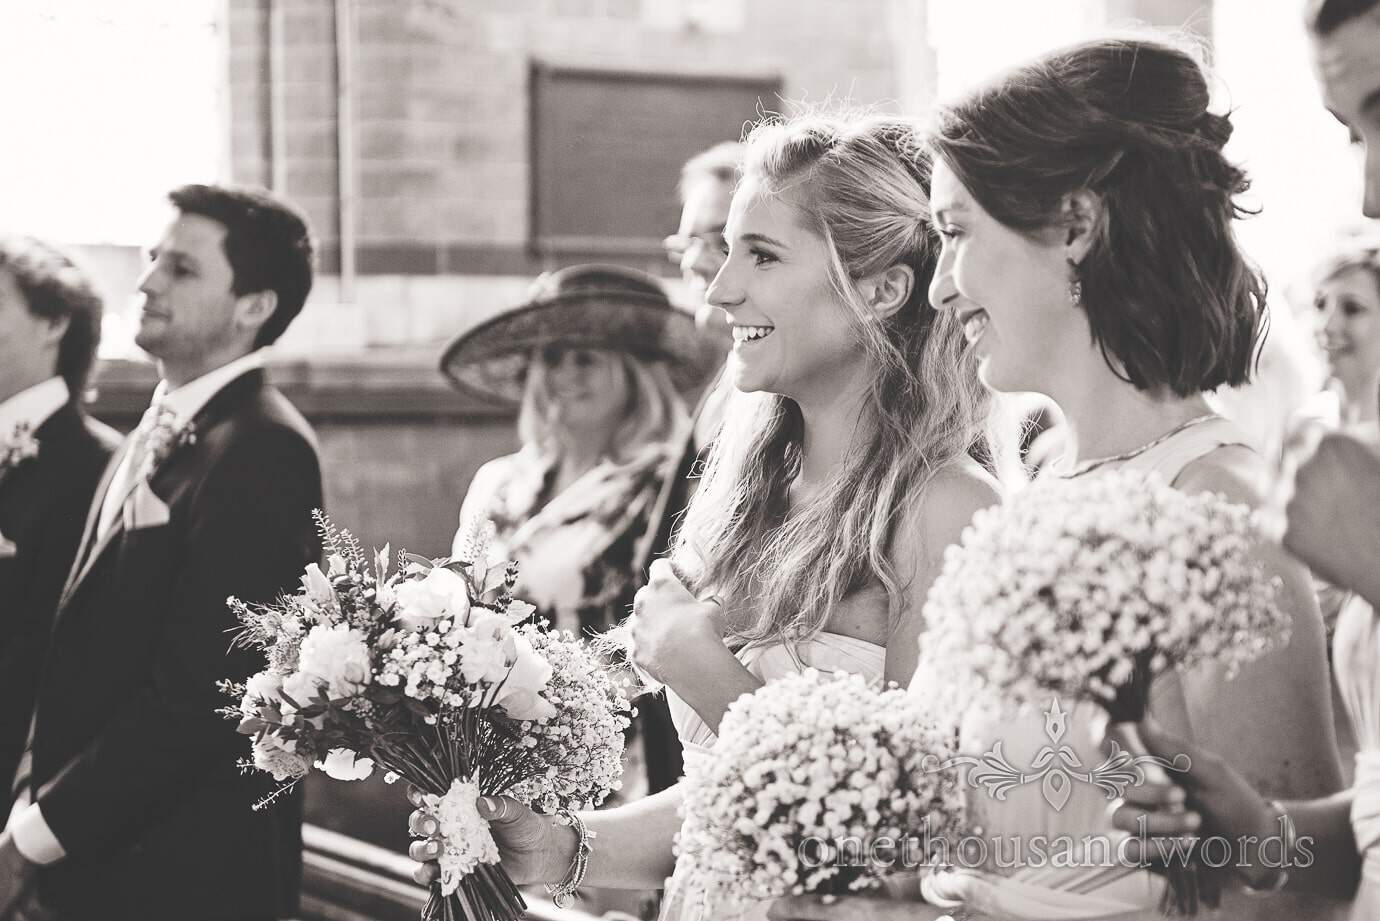 Black and white wedding photograph of beautiful bridesmaids at church ceremony